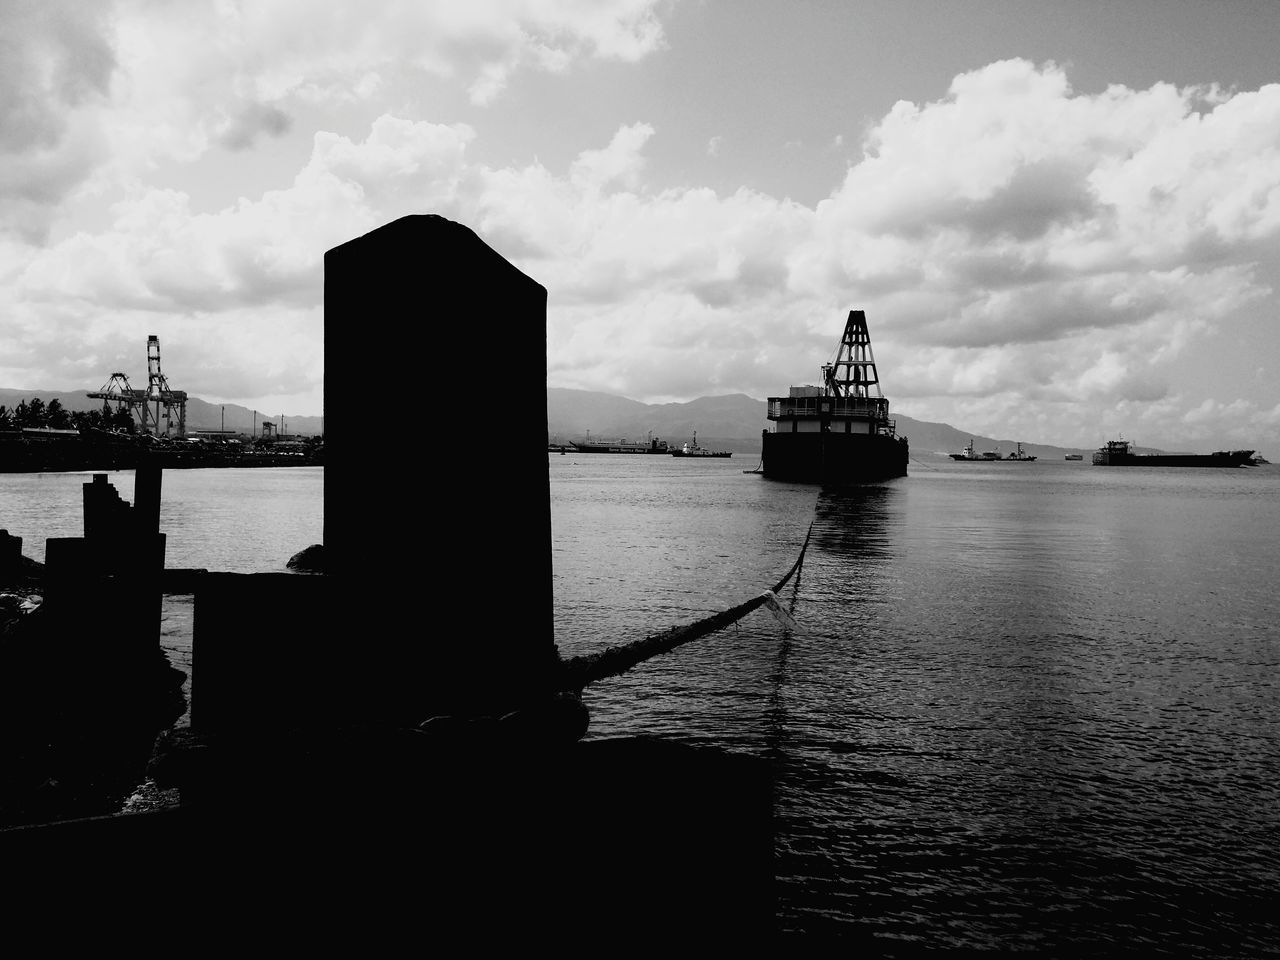 (Like a ) Ship on a Leash, one cannot reach the farthest reaches of the ocean when it is tied to land. Ship Sea Black And White Photography Dramatic Black And White Freedom Leash Constrained Batangas, Philippines Eyeem Philippines Feeling Down Fine Art Photography